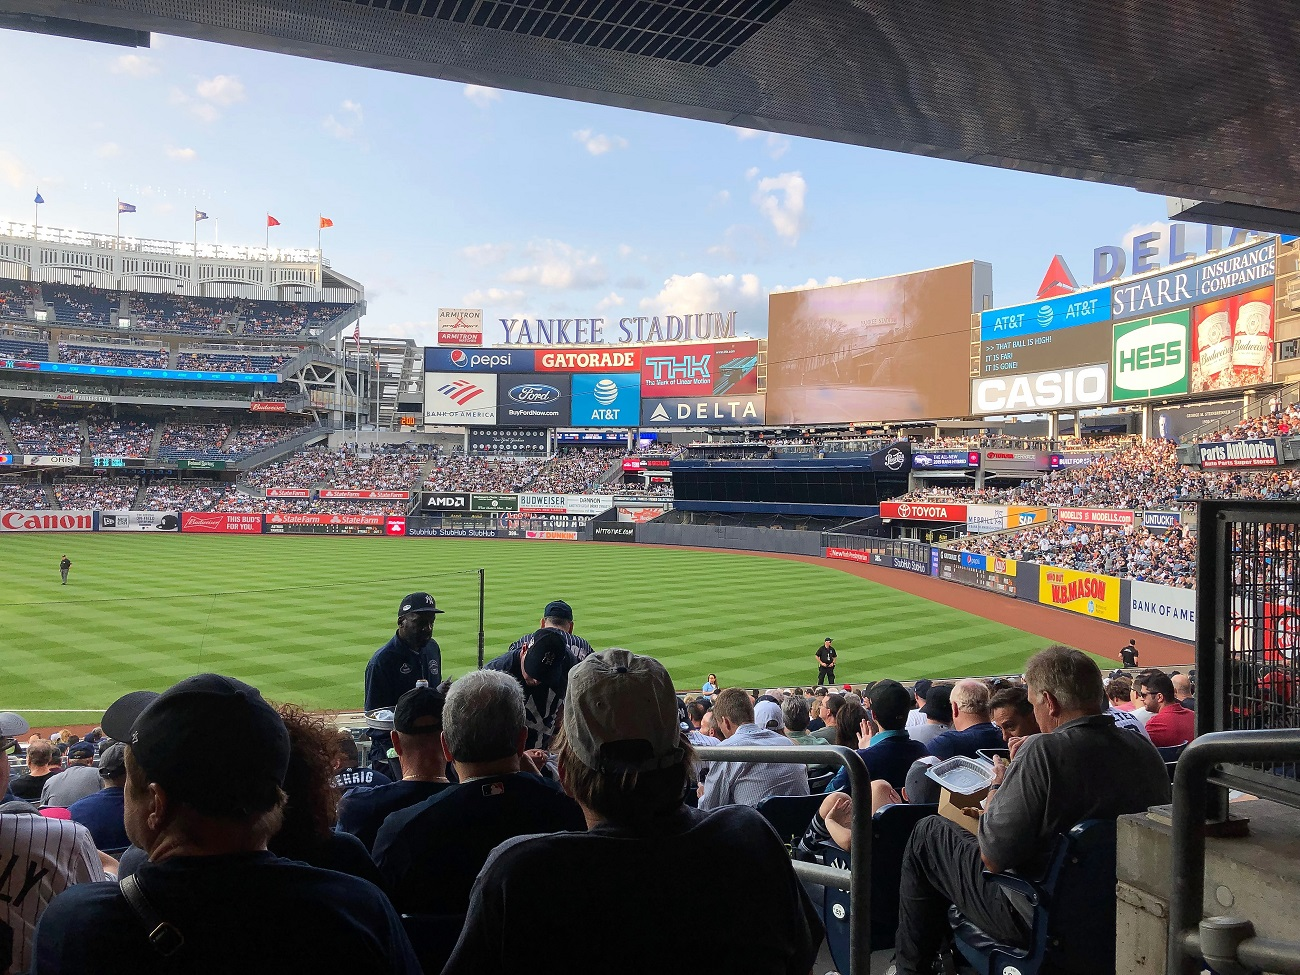 Bleachers Creatures out in right field at Yankee Stadium